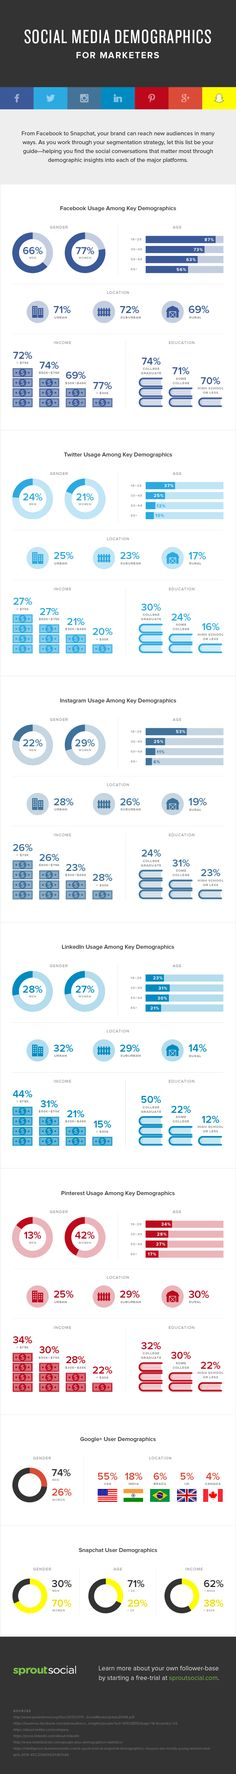 Infographic - social media demographics for marketers